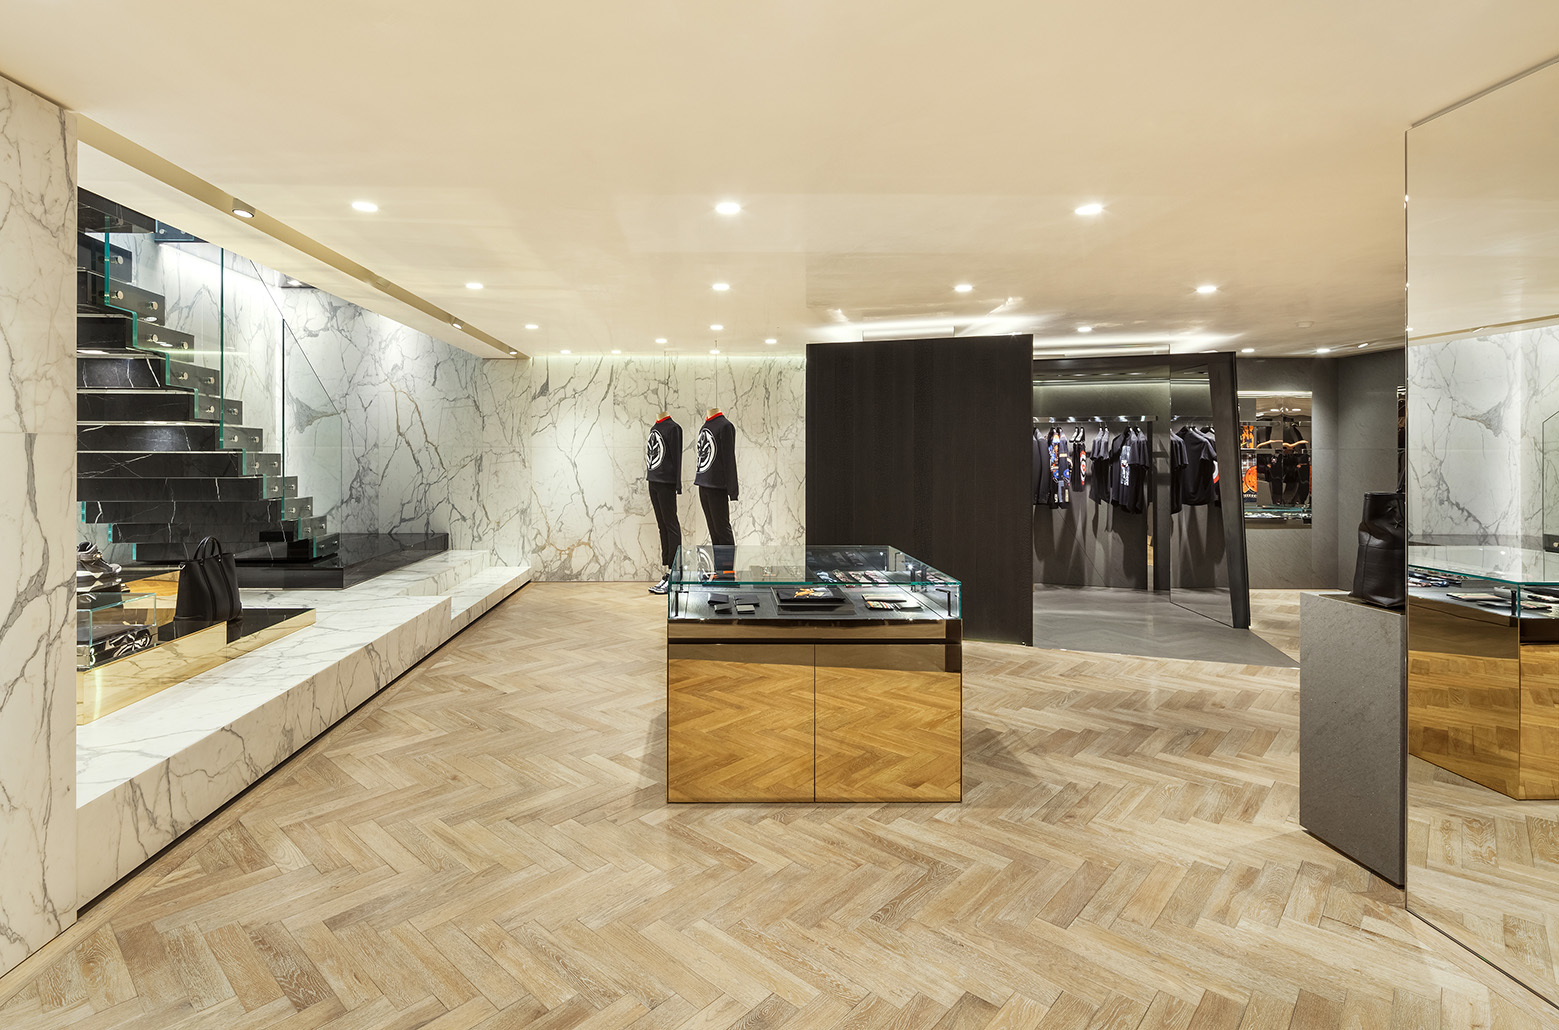 givenchy-flagship-store-in-seoul-piuarch-08